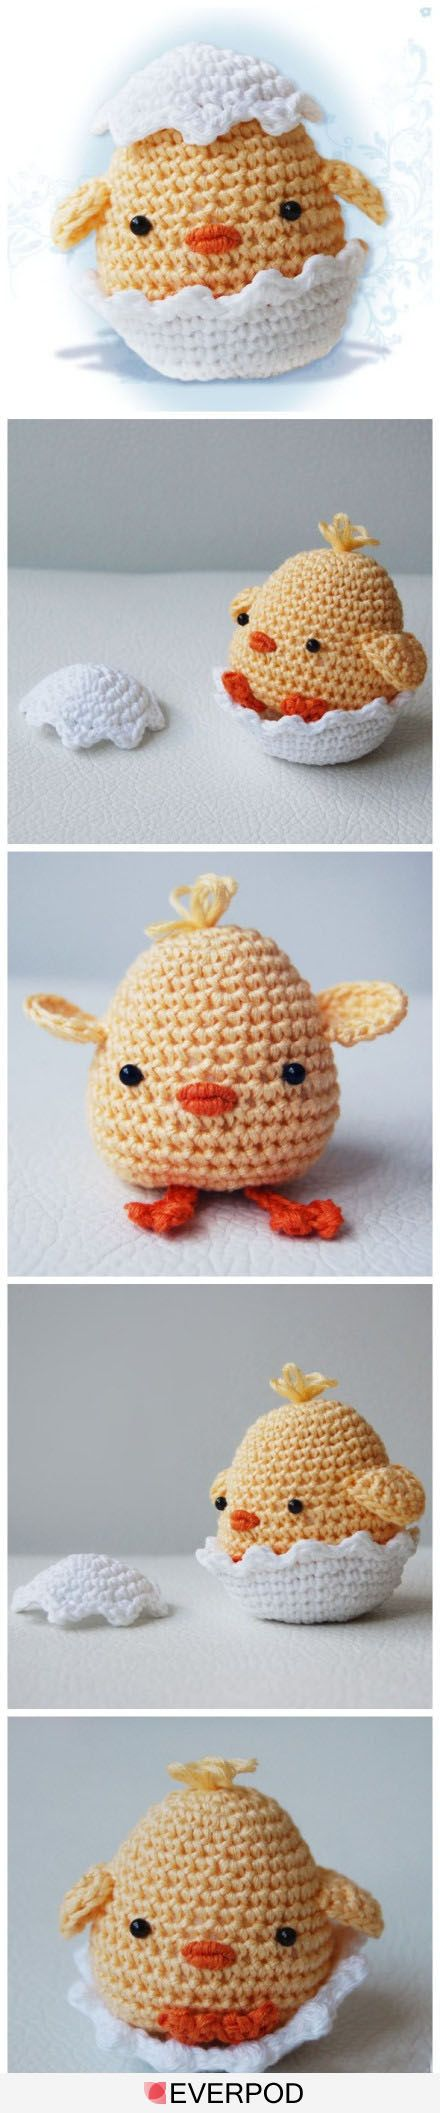 cute crochet chick